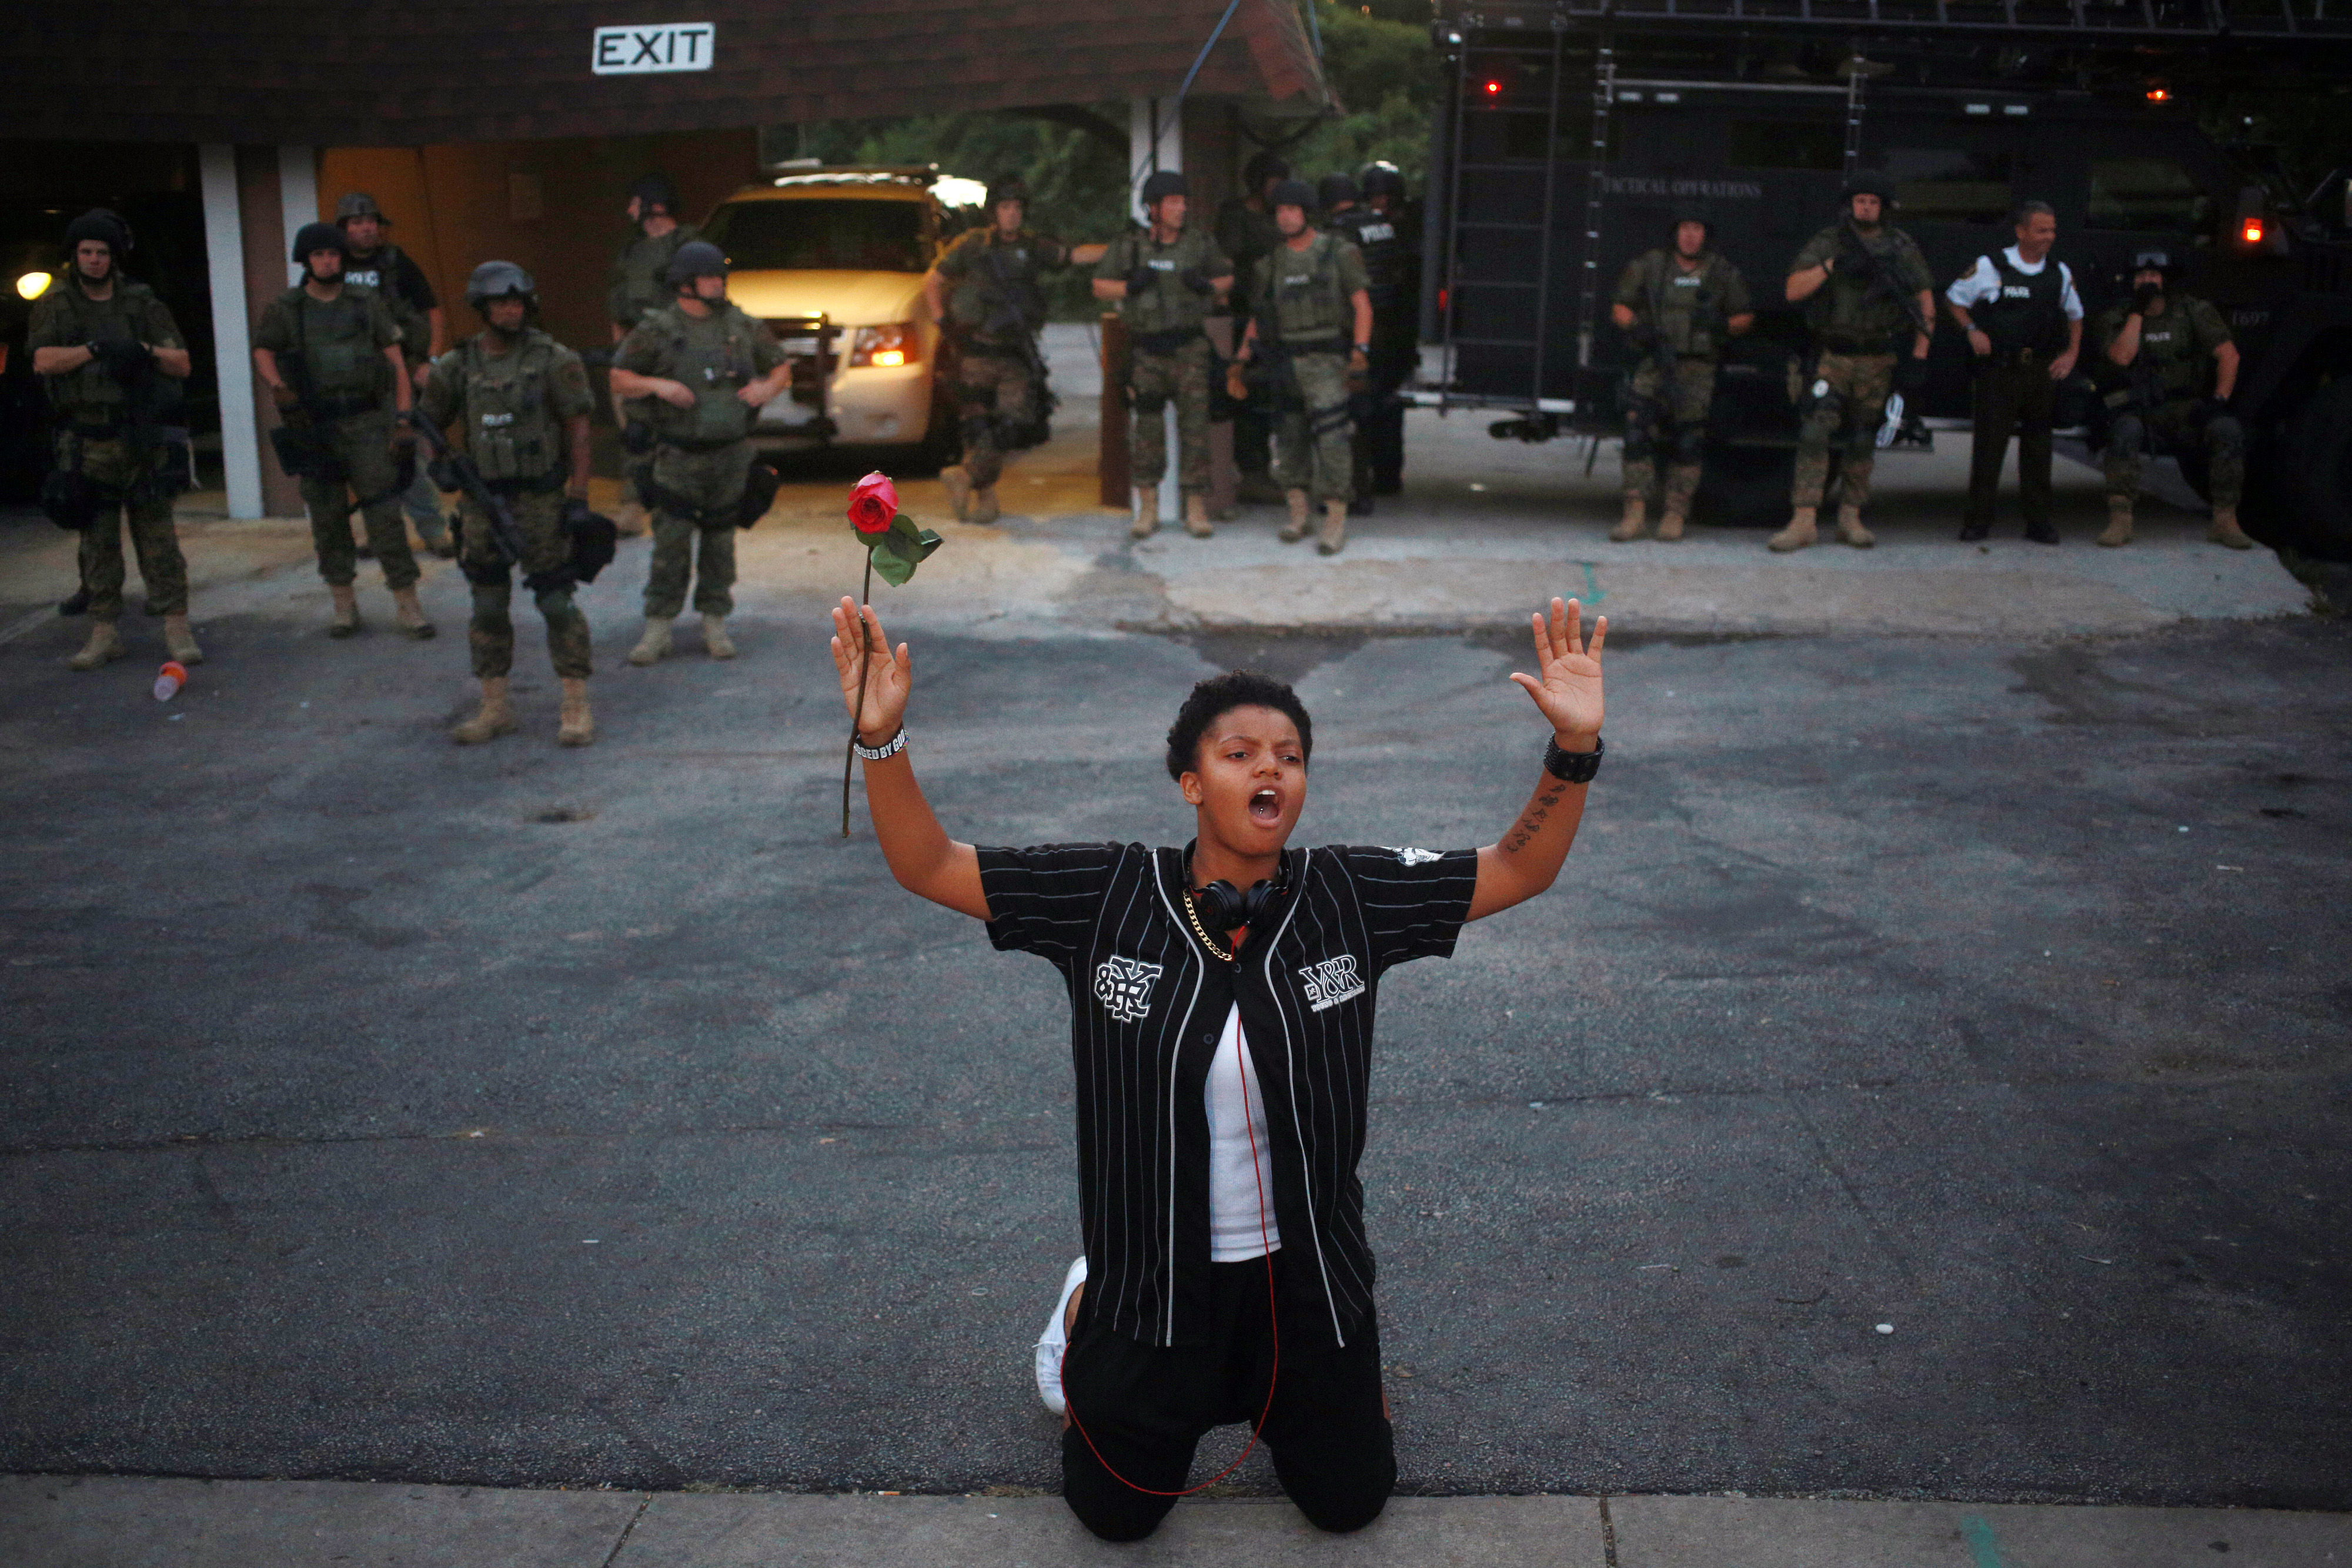 Bloomberg's Best Photos 2014: A demonstrator holding a red rose kneels in front of armed police officers and raises their hands above her head during protests in Ferguson, Missouri, U.S., on Tuesday, Aug. 19, 2014. A grand jury will begin hearing evidence tomorrow in the police shooting death of Ferguson, Missouri, teenager Michael Brown, as violent clashes continued in the St. Louis suburb. Photographer: Luke Sharrett/Bloomberg via Getty Images